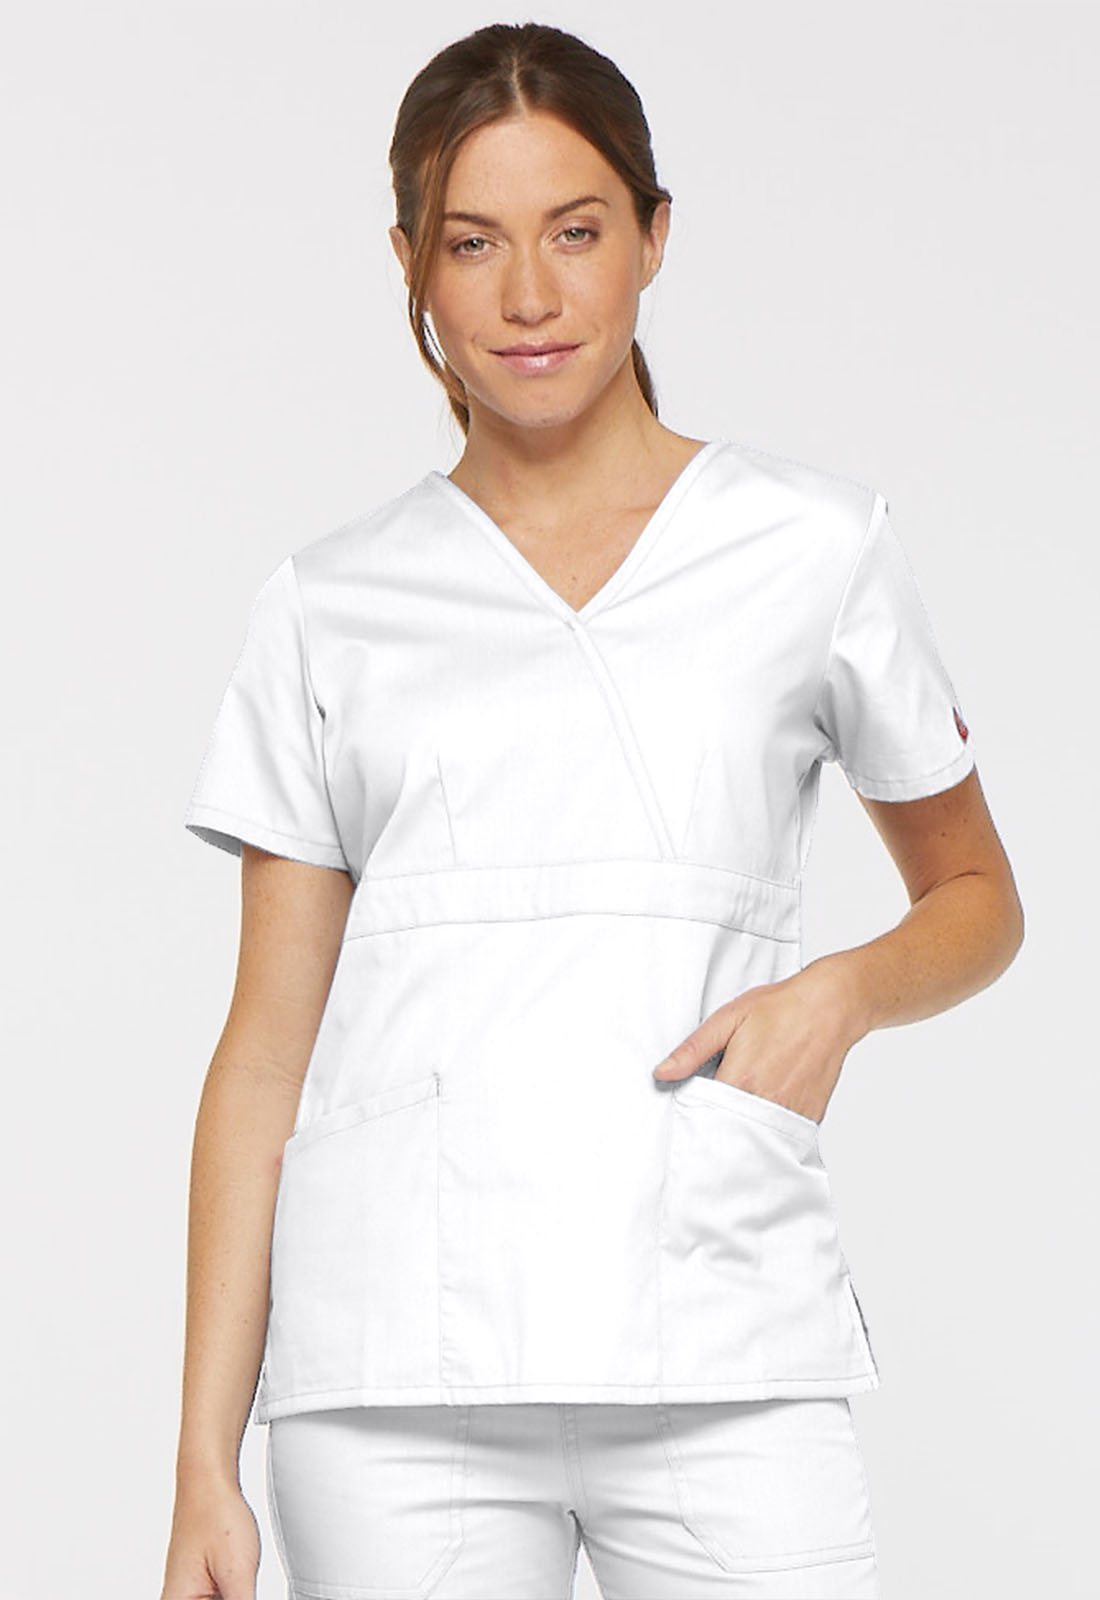 f5bfe14f8c2 Dickies EDS Signature Mock Wrap Top in White from Dickies Medical